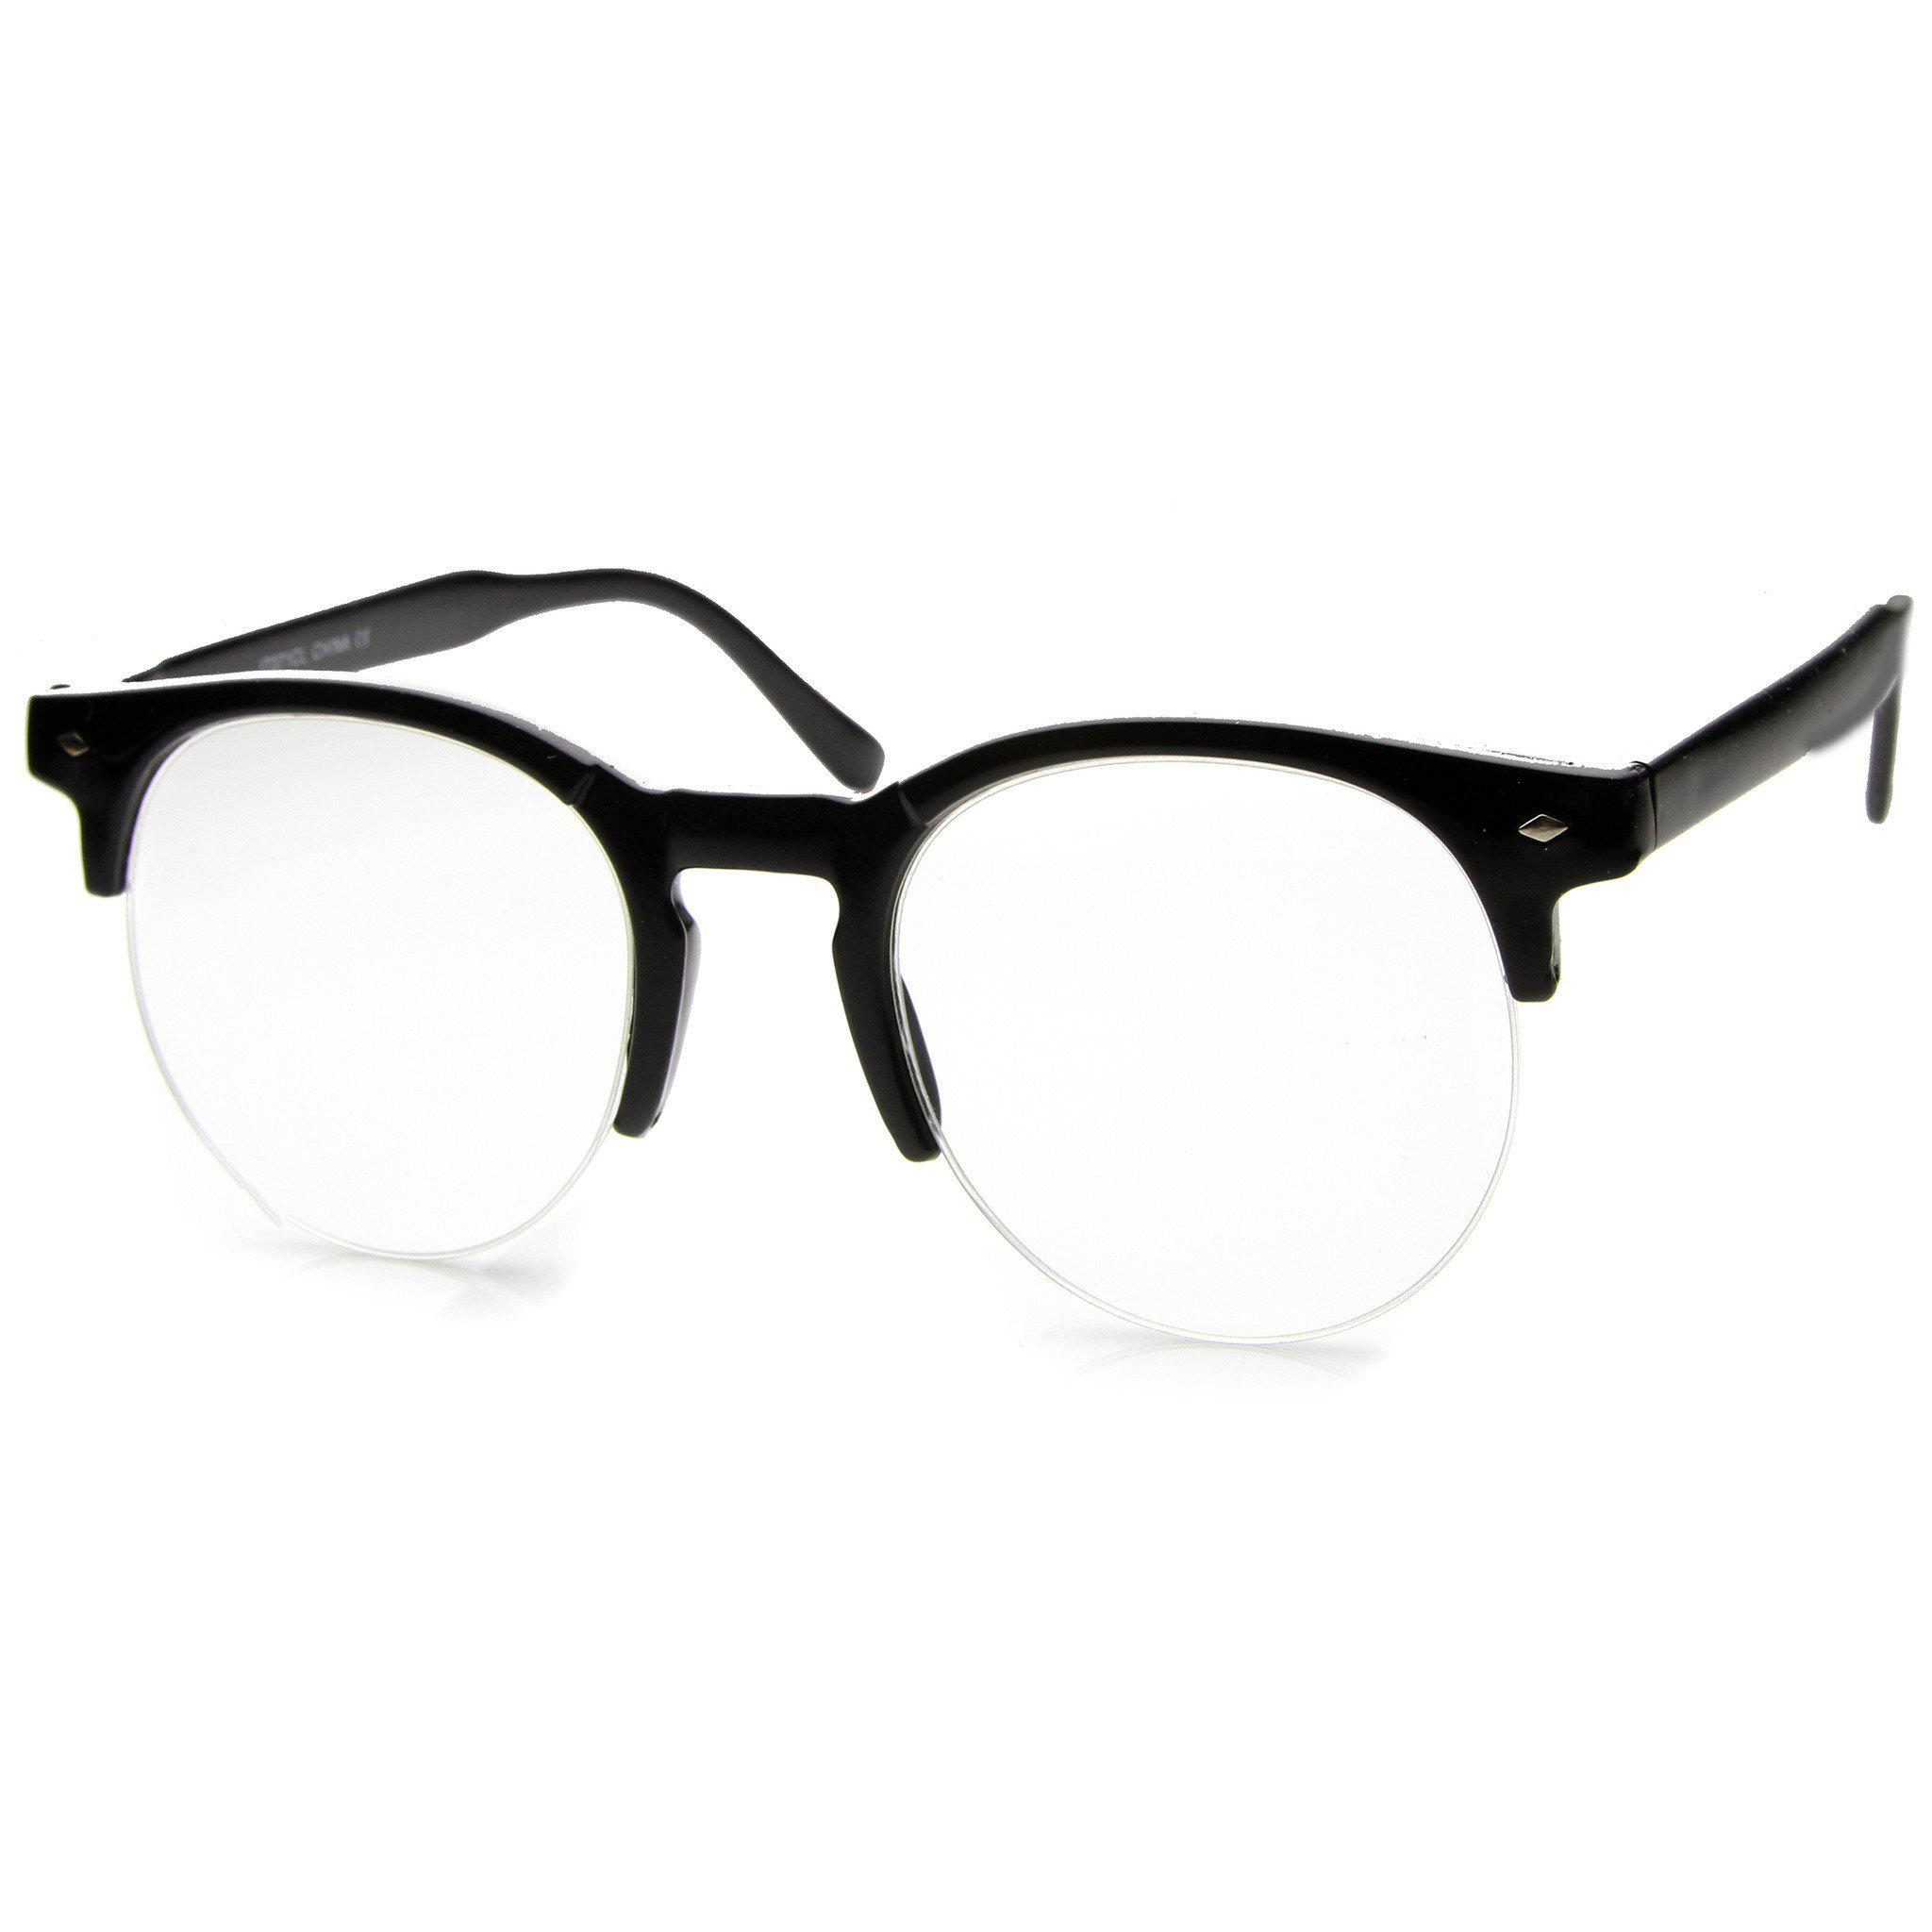 396681ebe1 Indie Dapper Round Half Frame Clear Lens from zeroUV